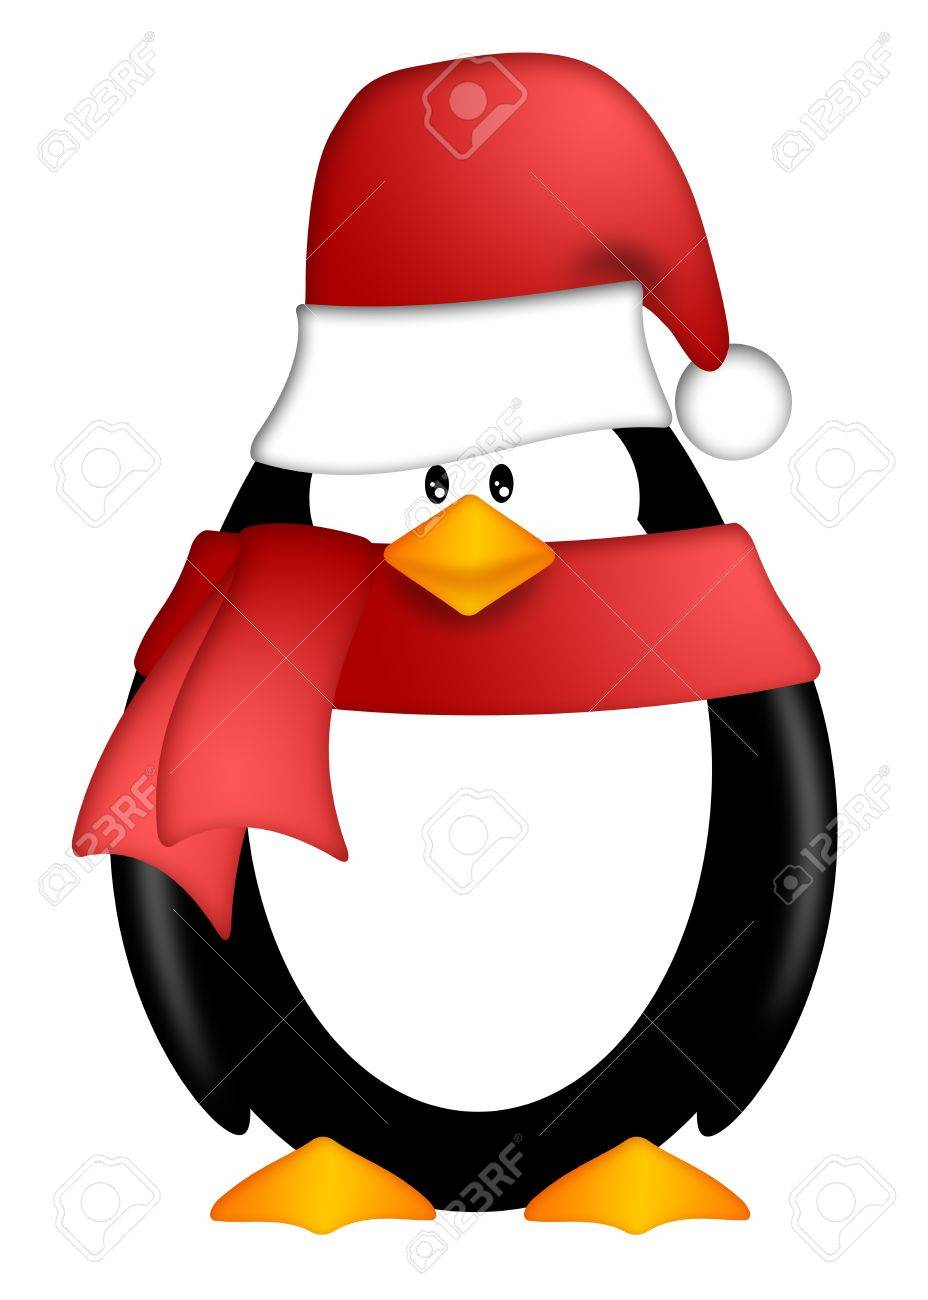 Cute Cartoon Penguin with Santa Hat and Red Scarf Illustration Isolated on White Background Stock Photo - 11582226